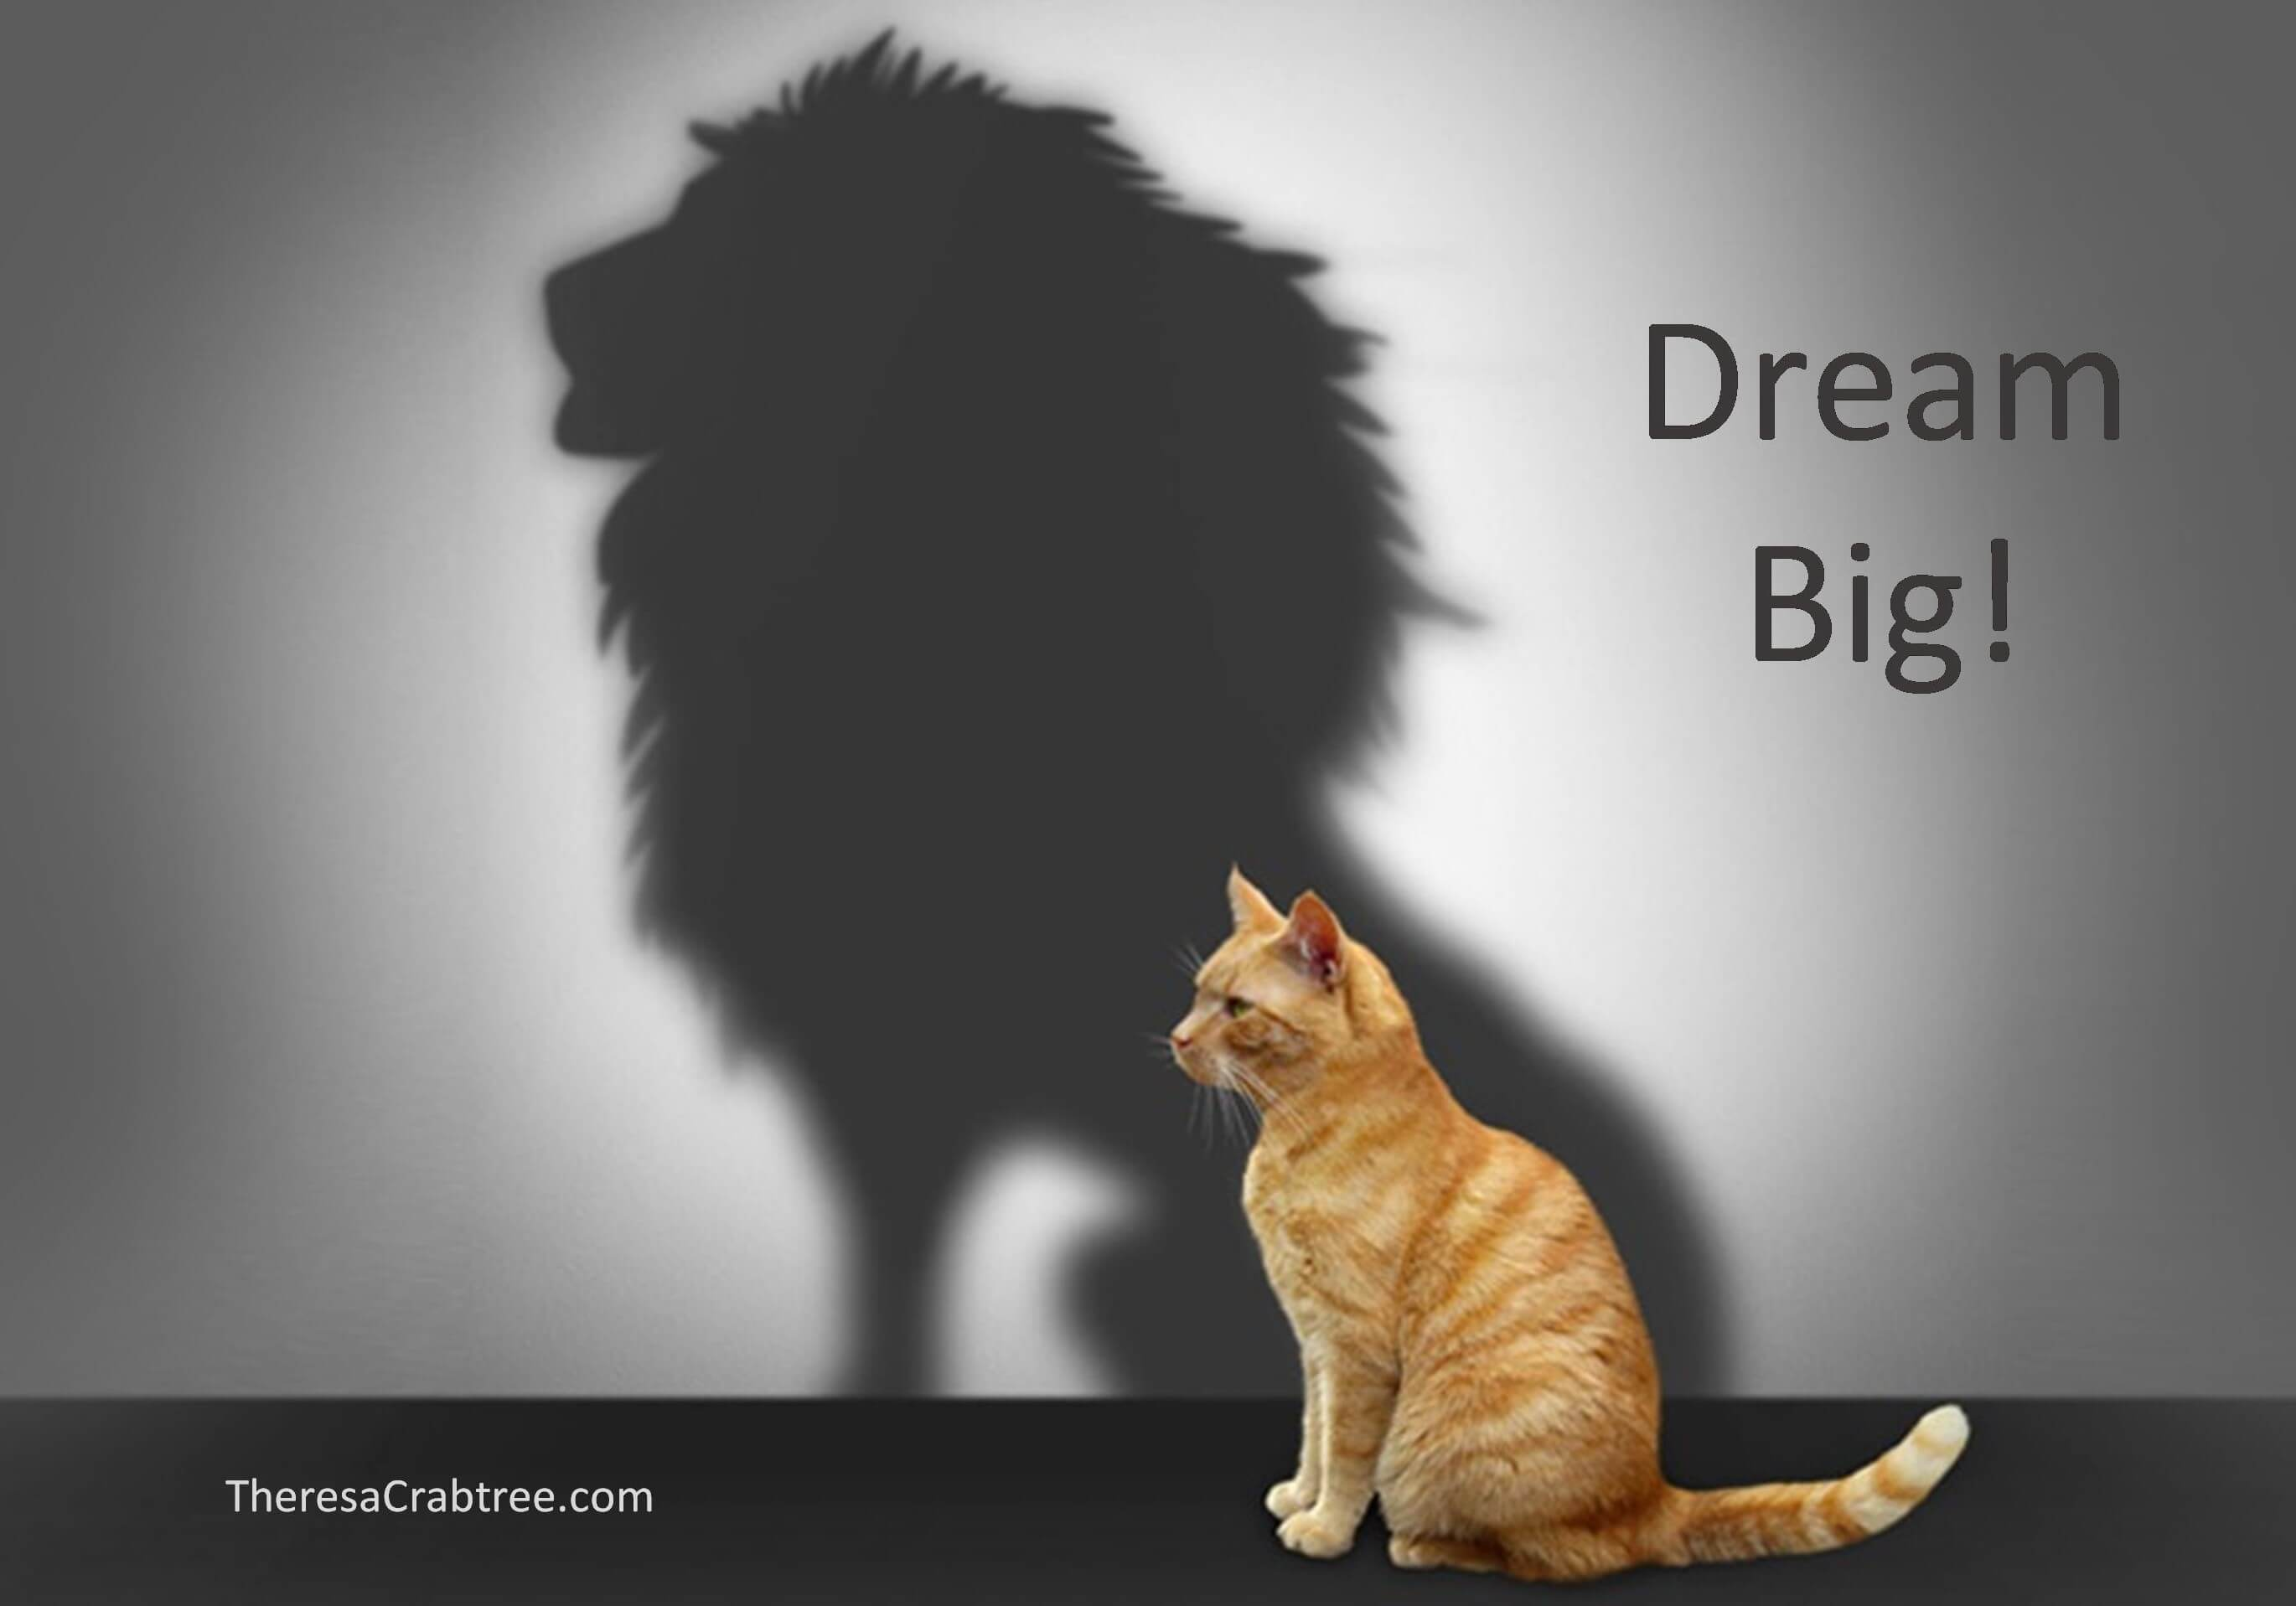 Prepare to Dream Big!